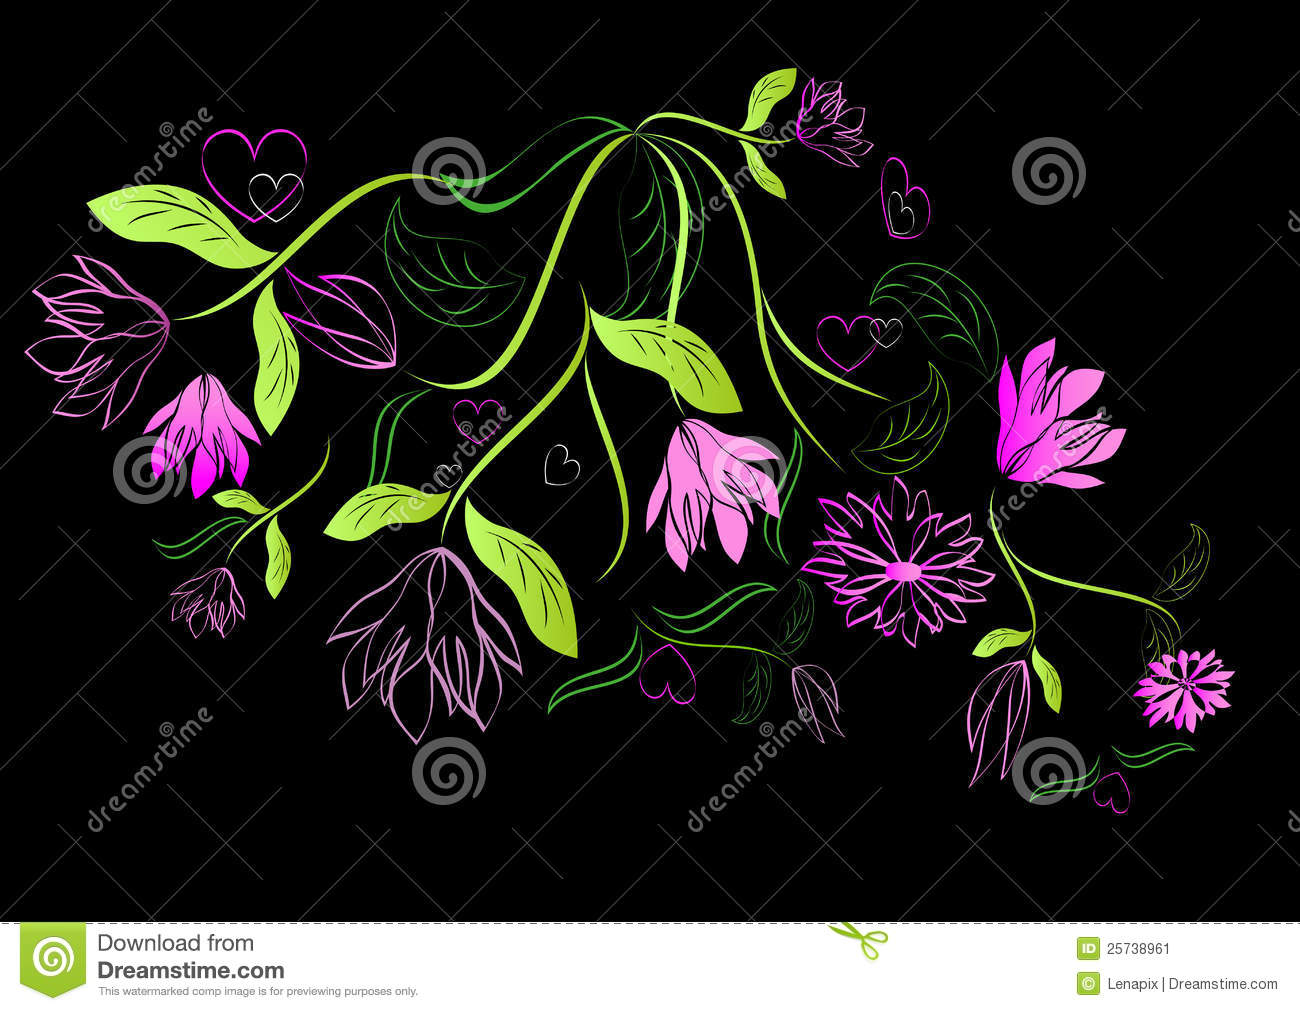 Green and pink floral design